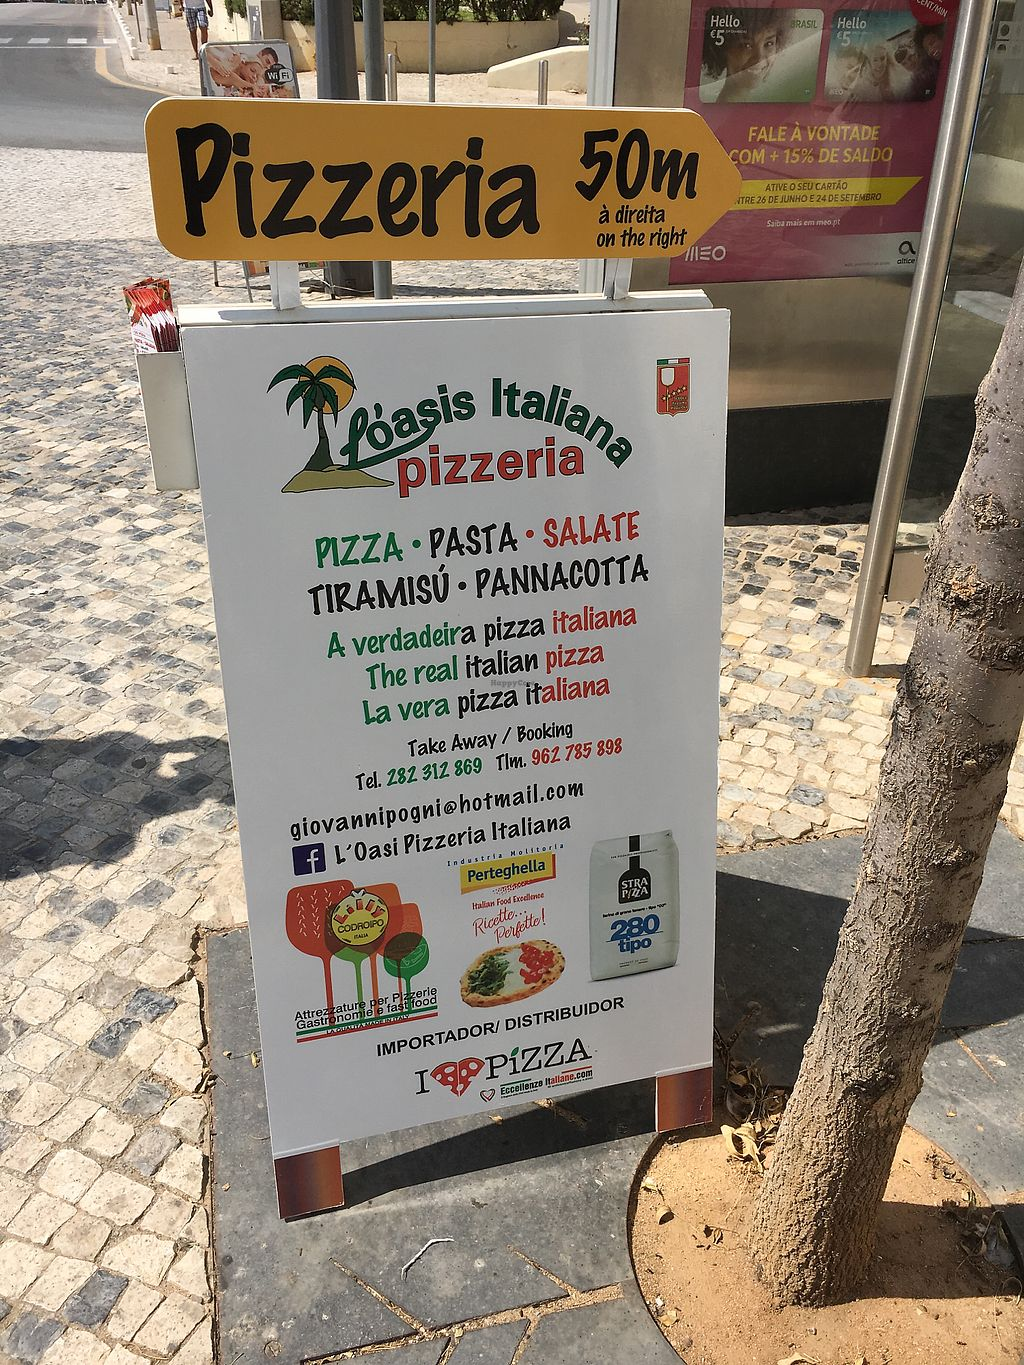 """Photo of L'Oasis Italiana  by <a href=""""/members/profile/hack_man"""">hack_man</a> <br/>This way please  <br/> September 7, 2017  - <a href='/contact/abuse/image/63207/301784'>Report</a>"""